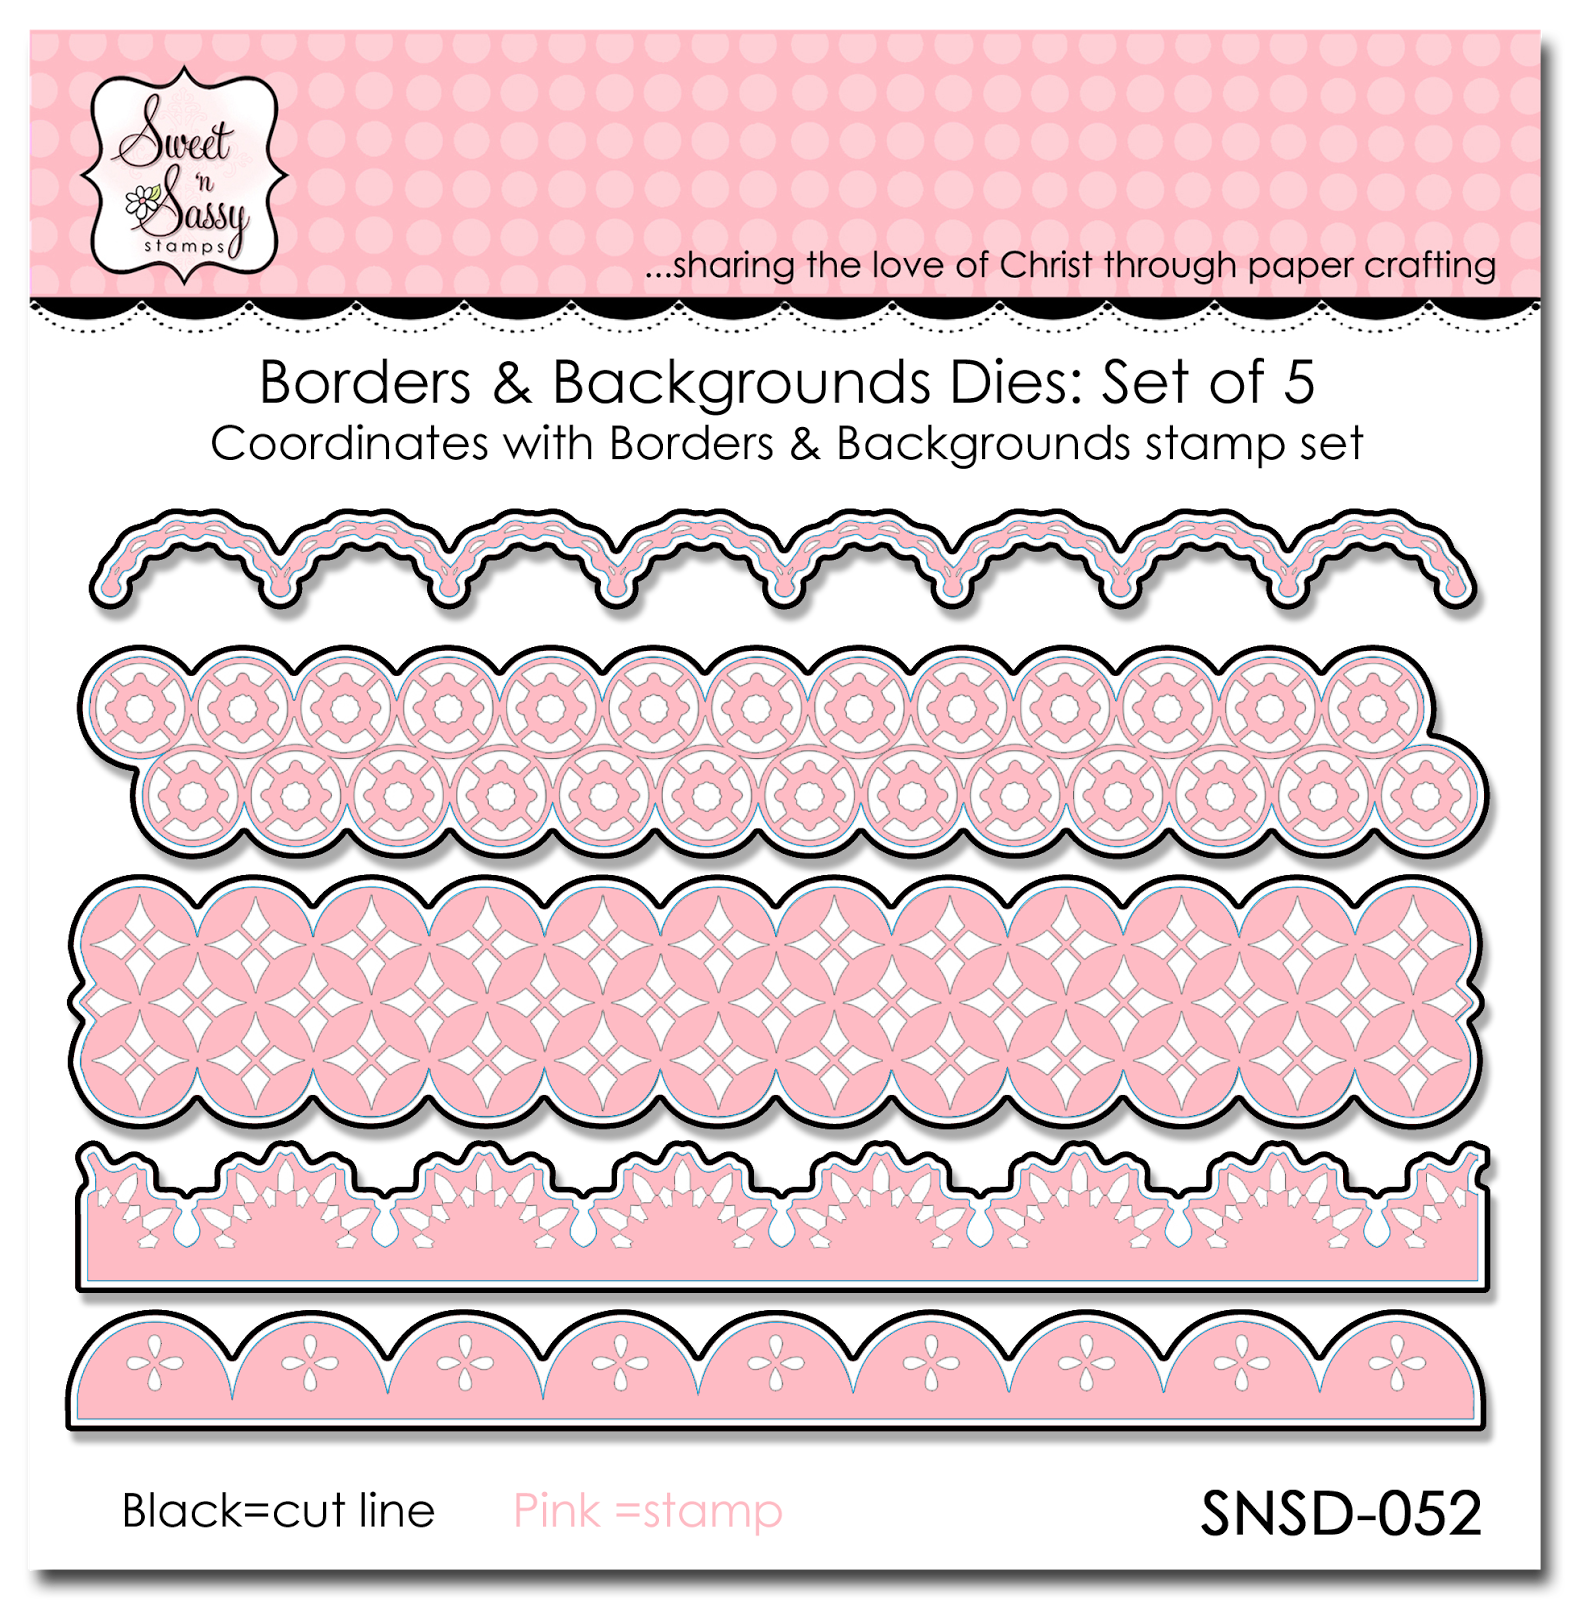 http://www.sweetnsassystamps.com/borders-backgrounds-die-set/